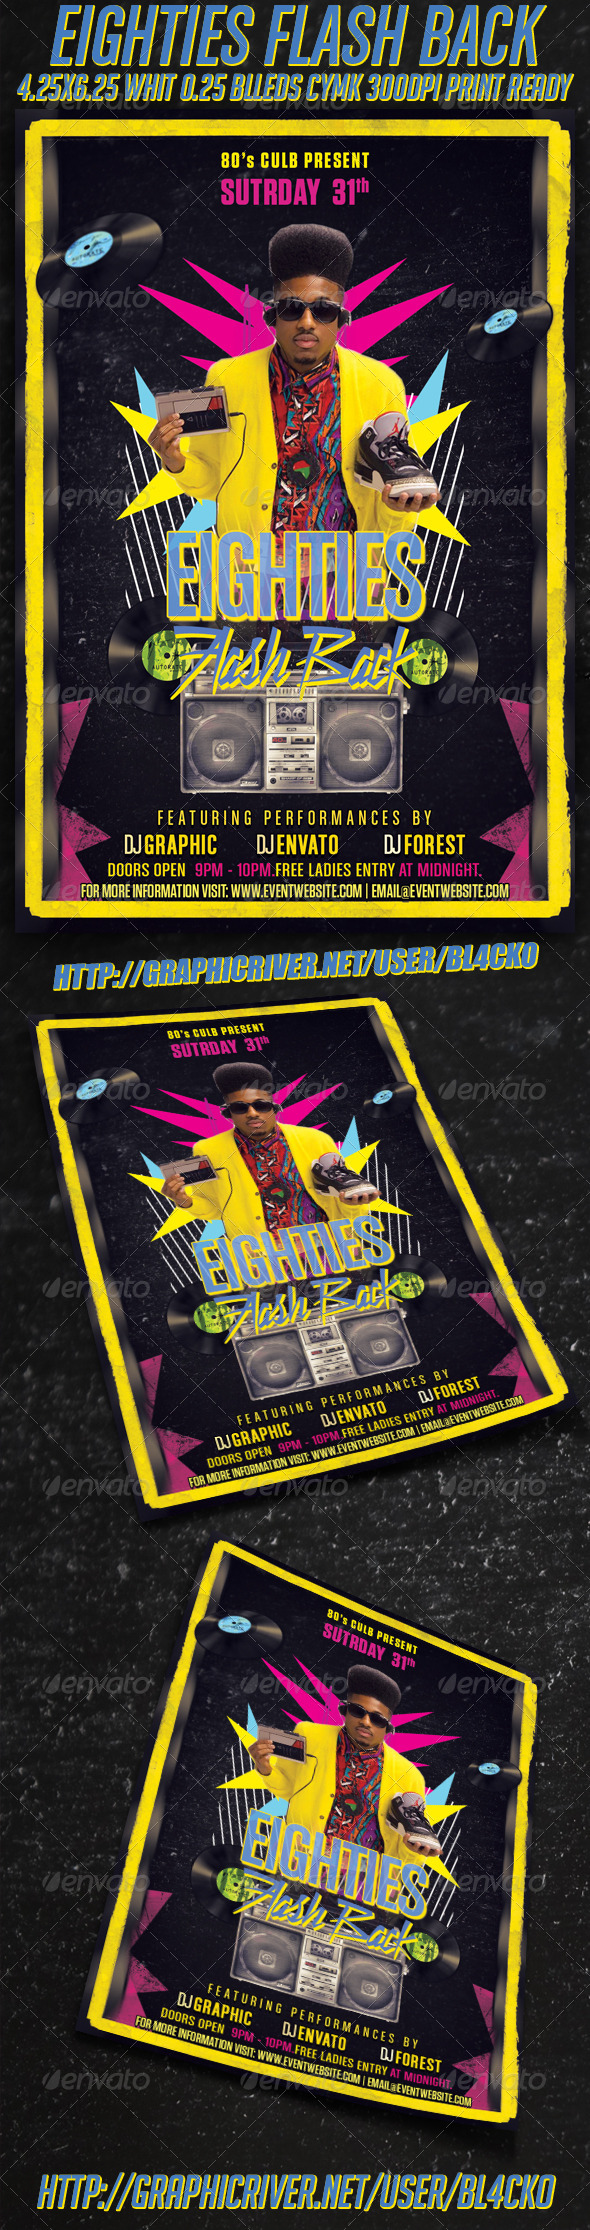 GraphicRiver Eighties Flash Back Flyer 3985628